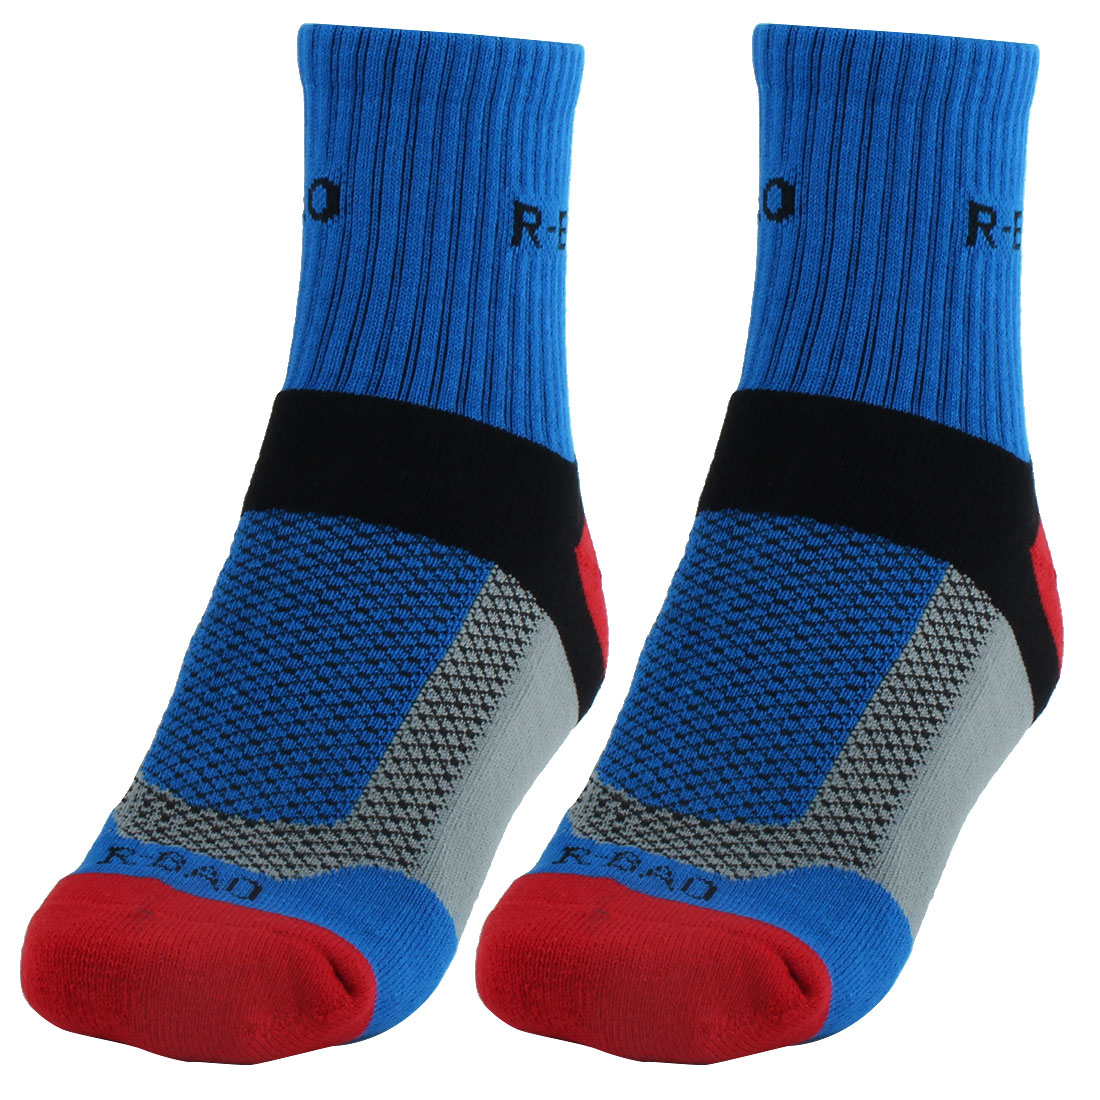 R-BAO Authorized Adult Mountain Bike Workout Training Cycling Socks Blue Pair